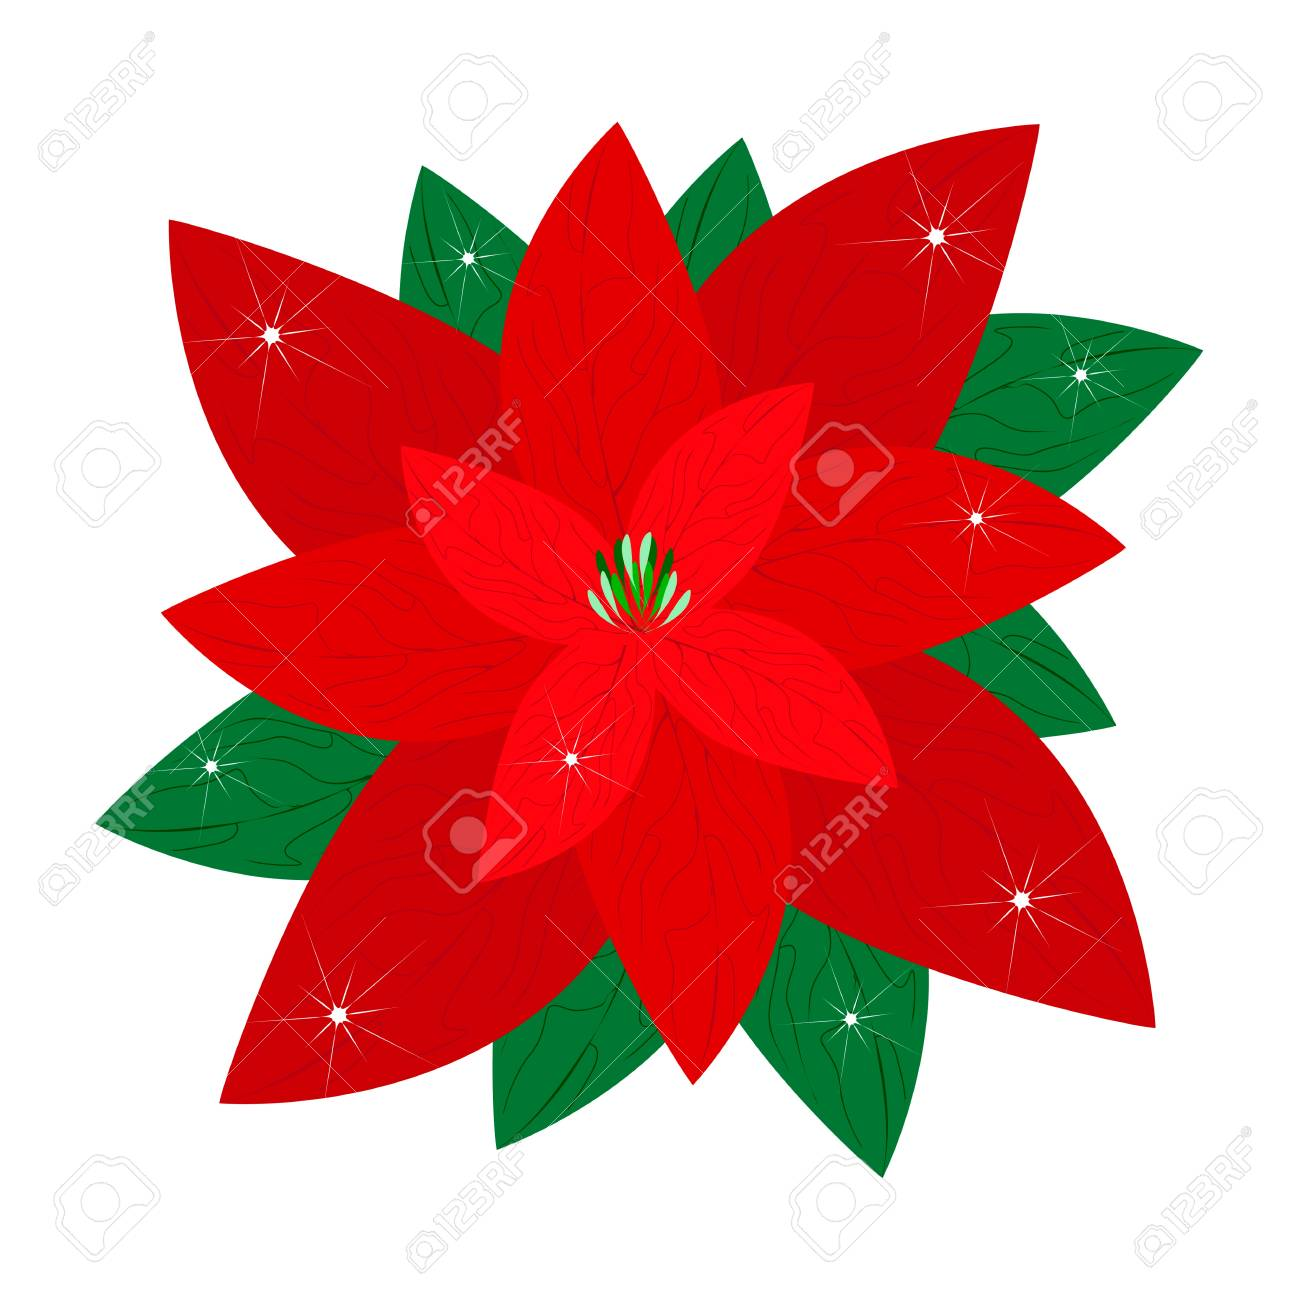 a beautiful christmas poinsettia flower isolated on white background rh 123rf com free clipart poinsettia flowers free poinsettia clip art images